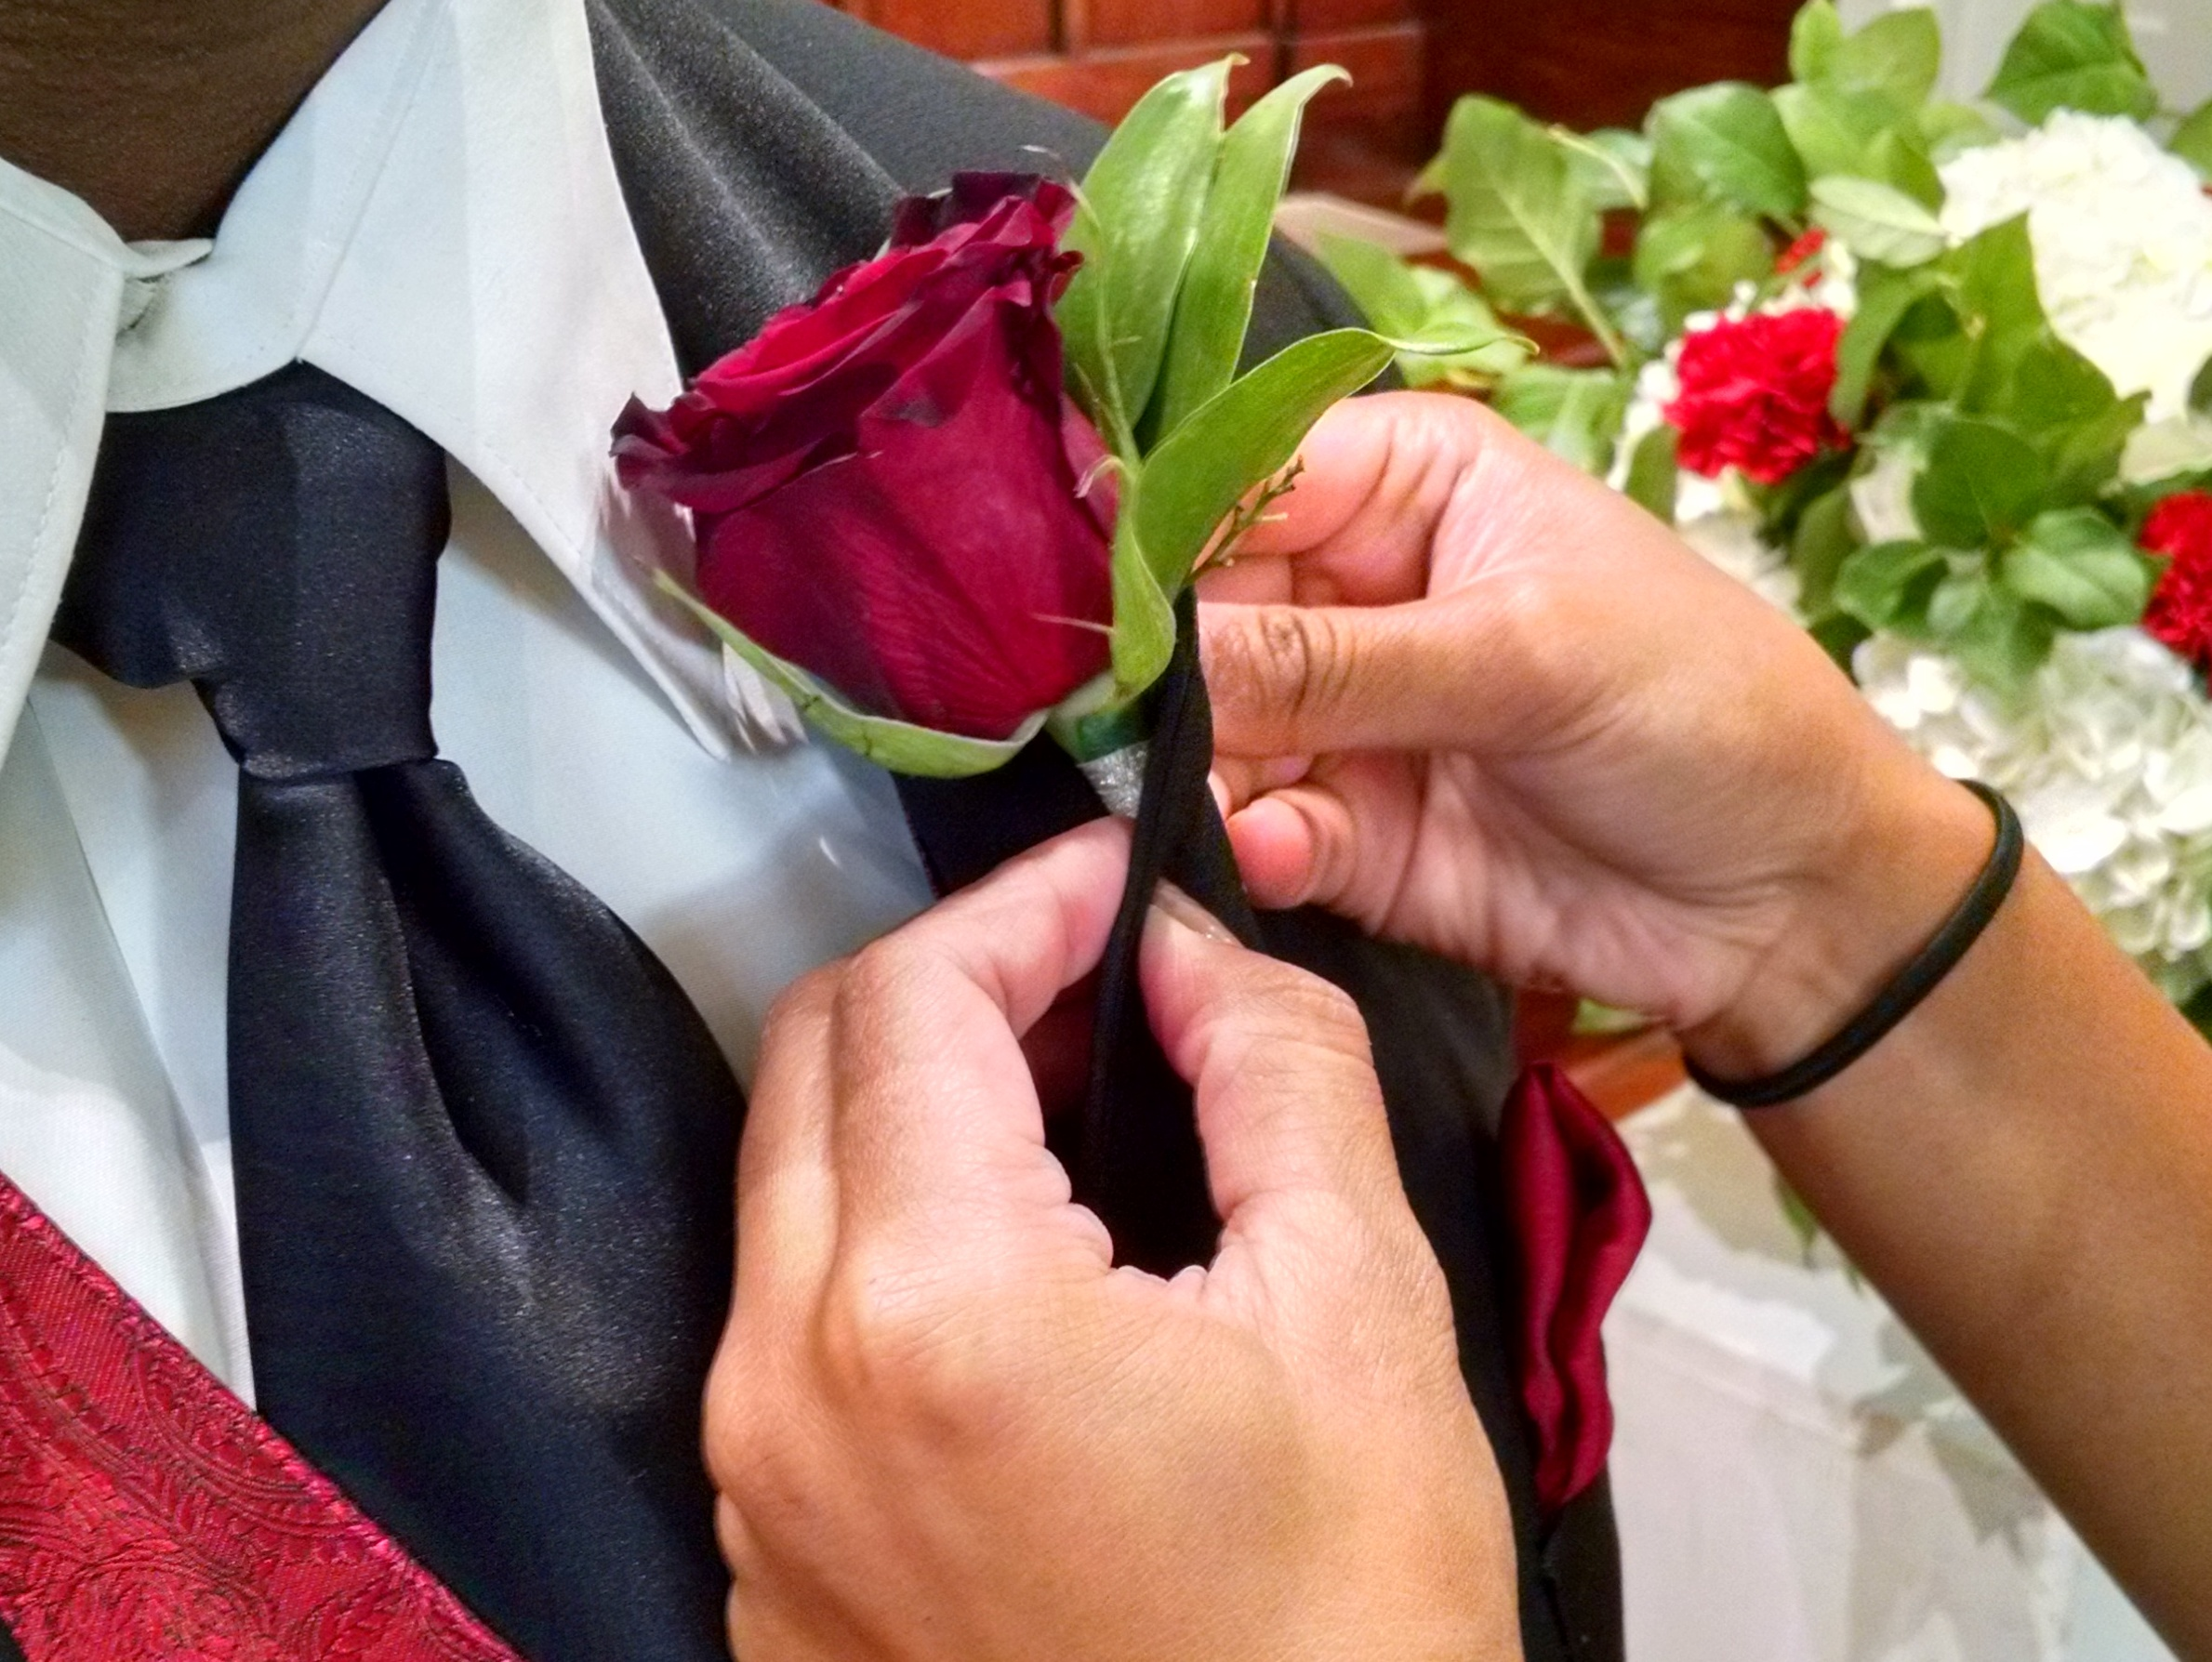 You're sort of wrapping the fabric of the lapel around the stem of the boutonniere to make it easy to pin through the layers.